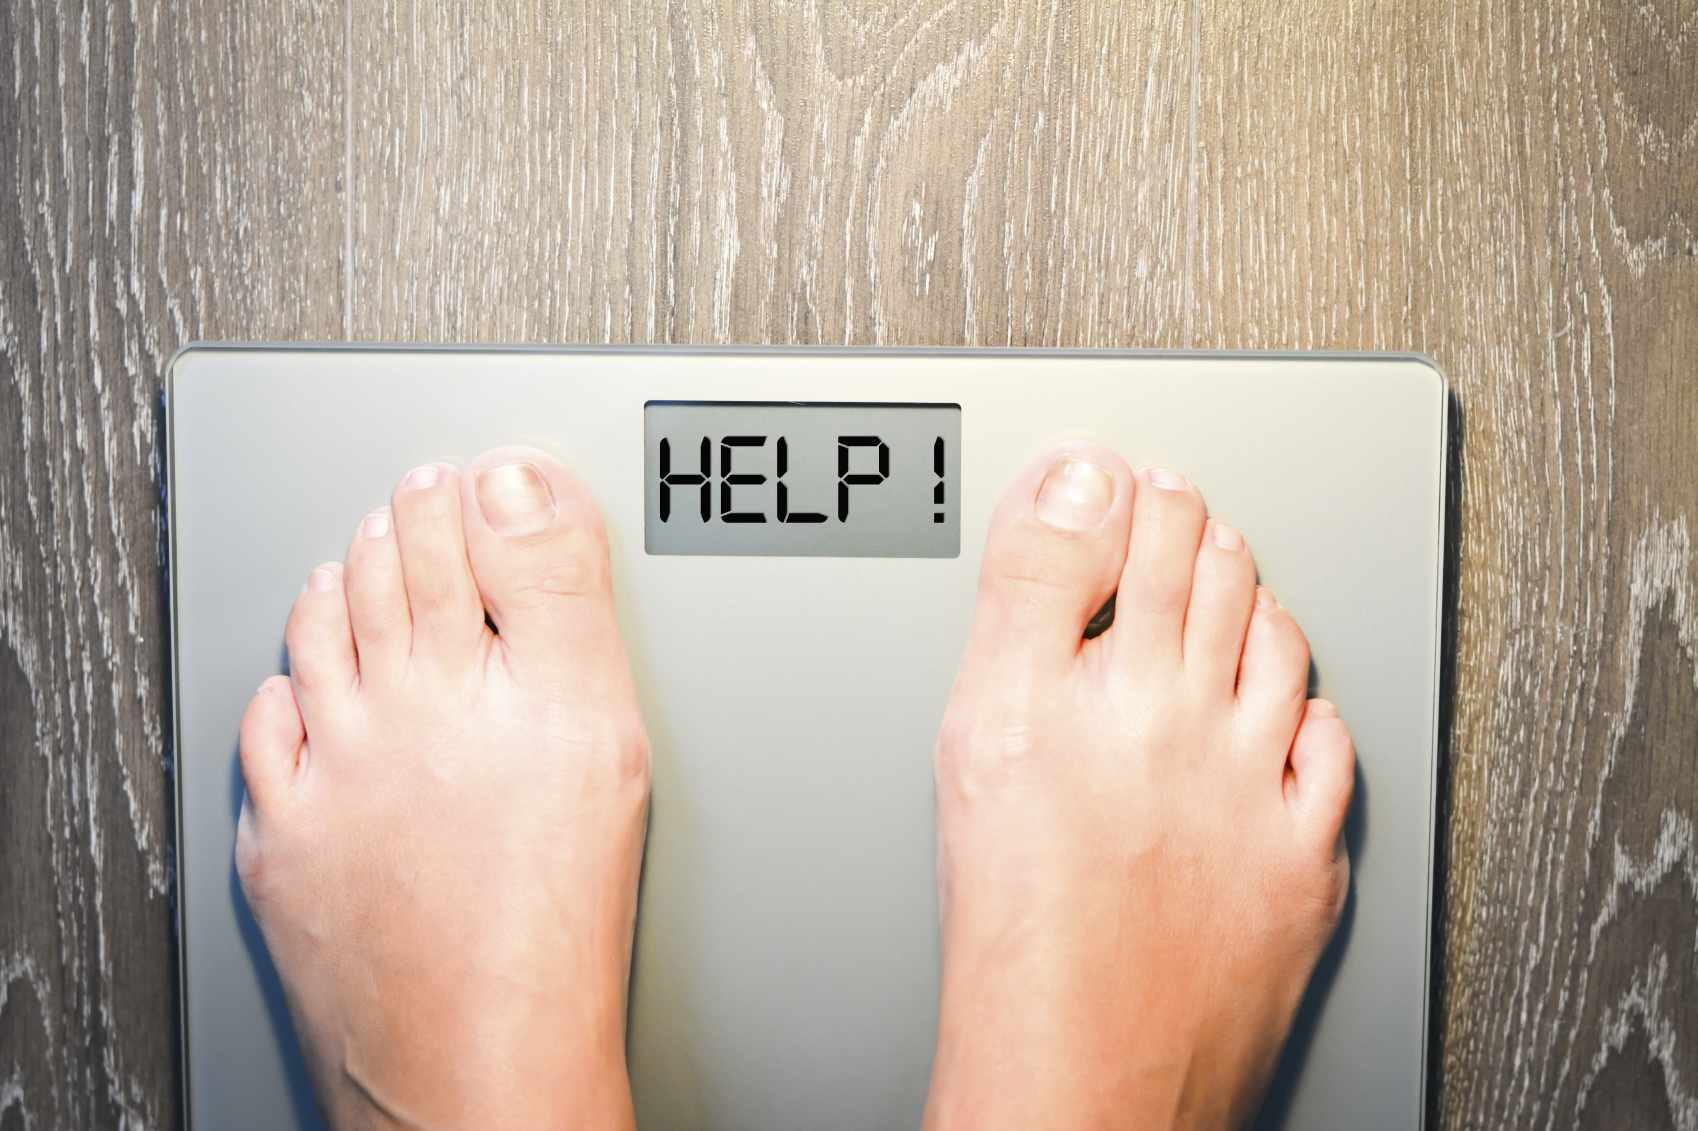 When it comes to weight loss, past generations had it much easier. Research shows they could eat more, exercise less, and still weigh less than you.